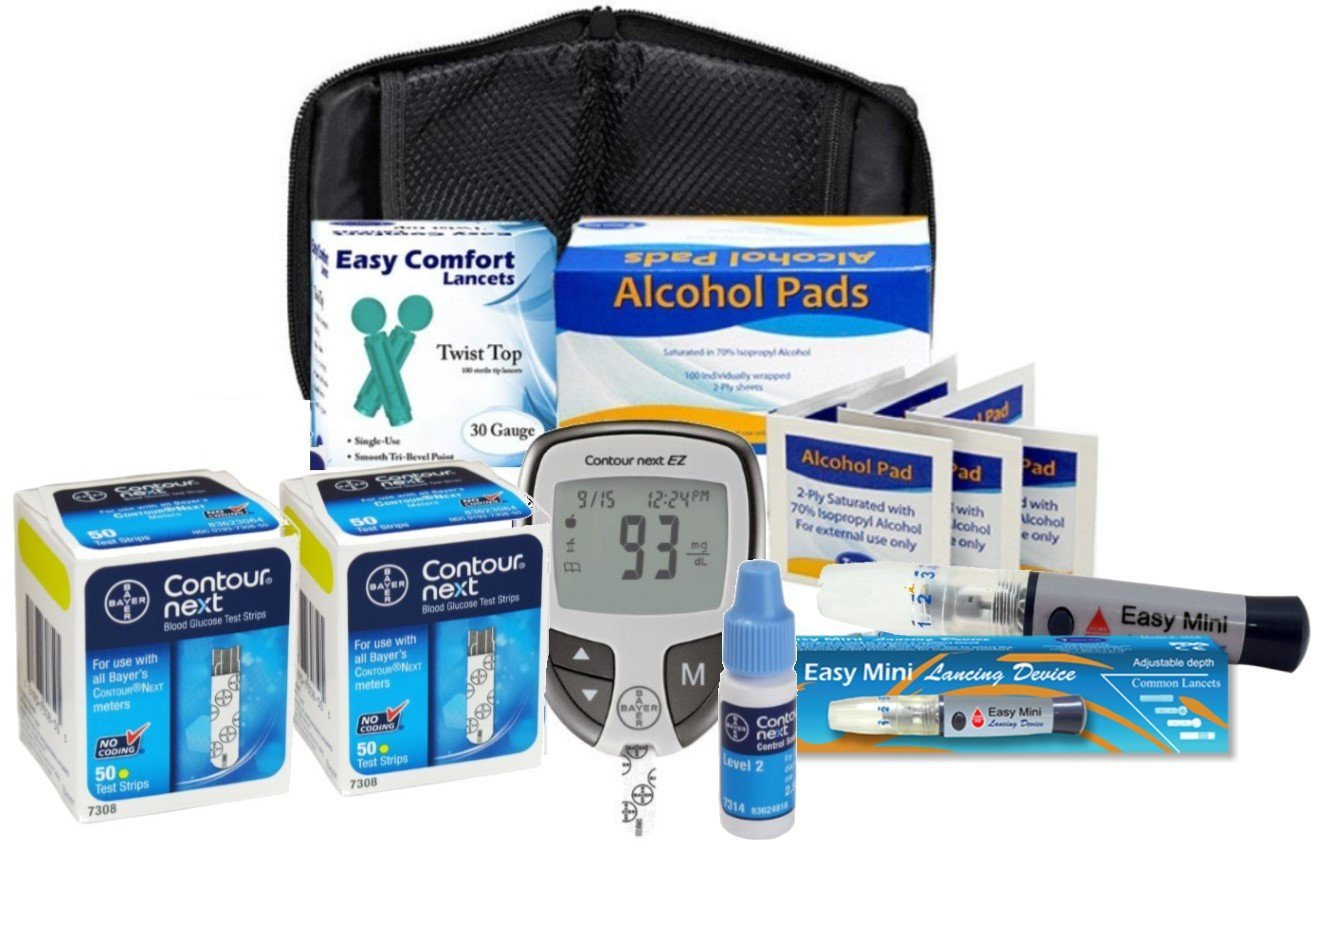 Slight Touch Contour Next Diabetes Testing Kit - Ez Meter, 100 Bayer Contour Next Test Strips, 100 30g Lancets, 1 Lancing Device, 100 Alcohol Prep Pads (Blue)